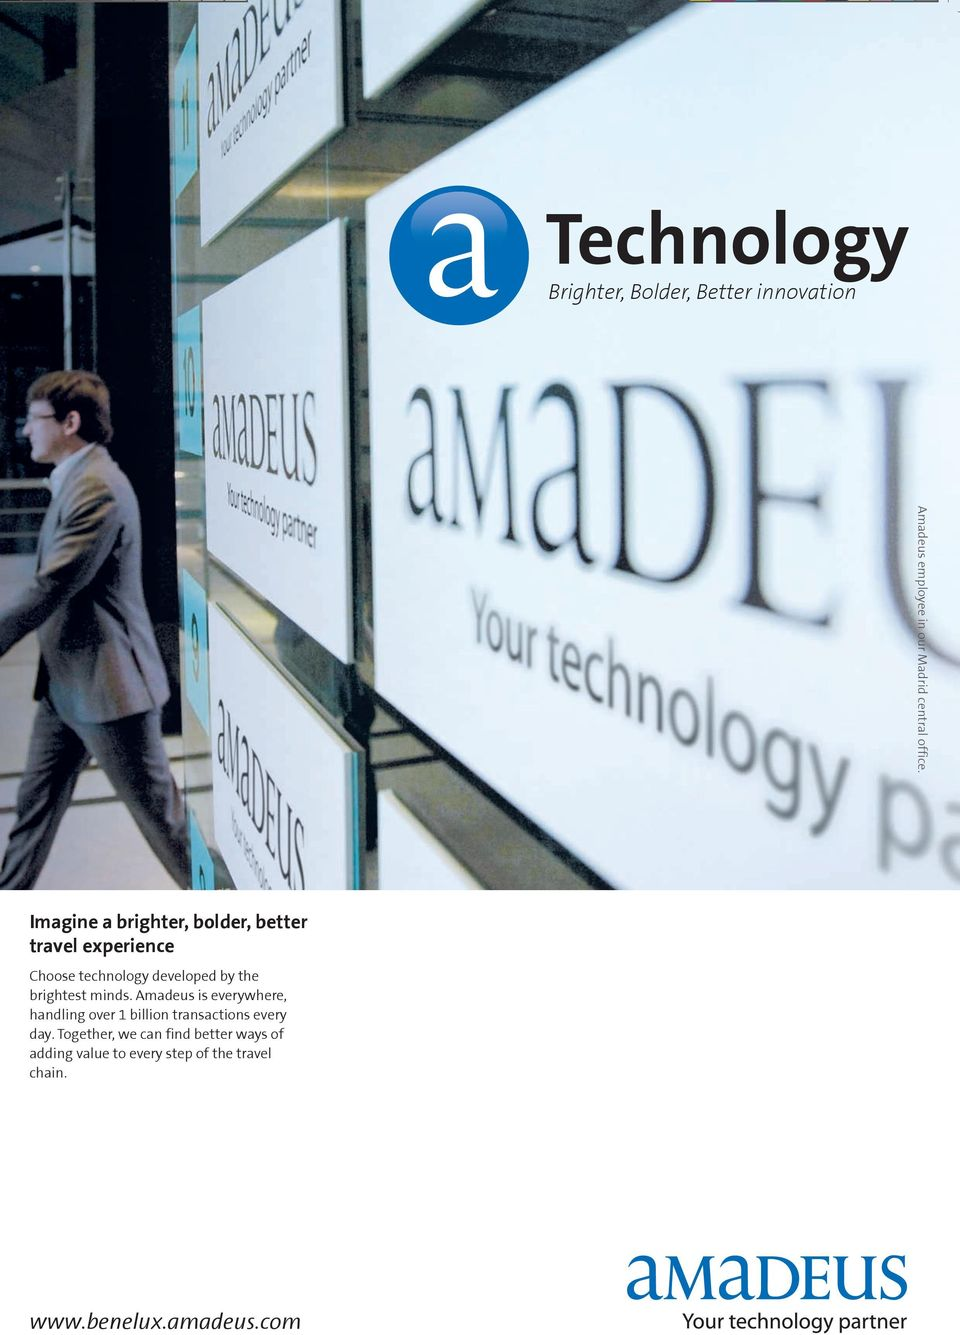 brightest minds. Amadeus is everywhere, handling over 1 billion transactions every day.